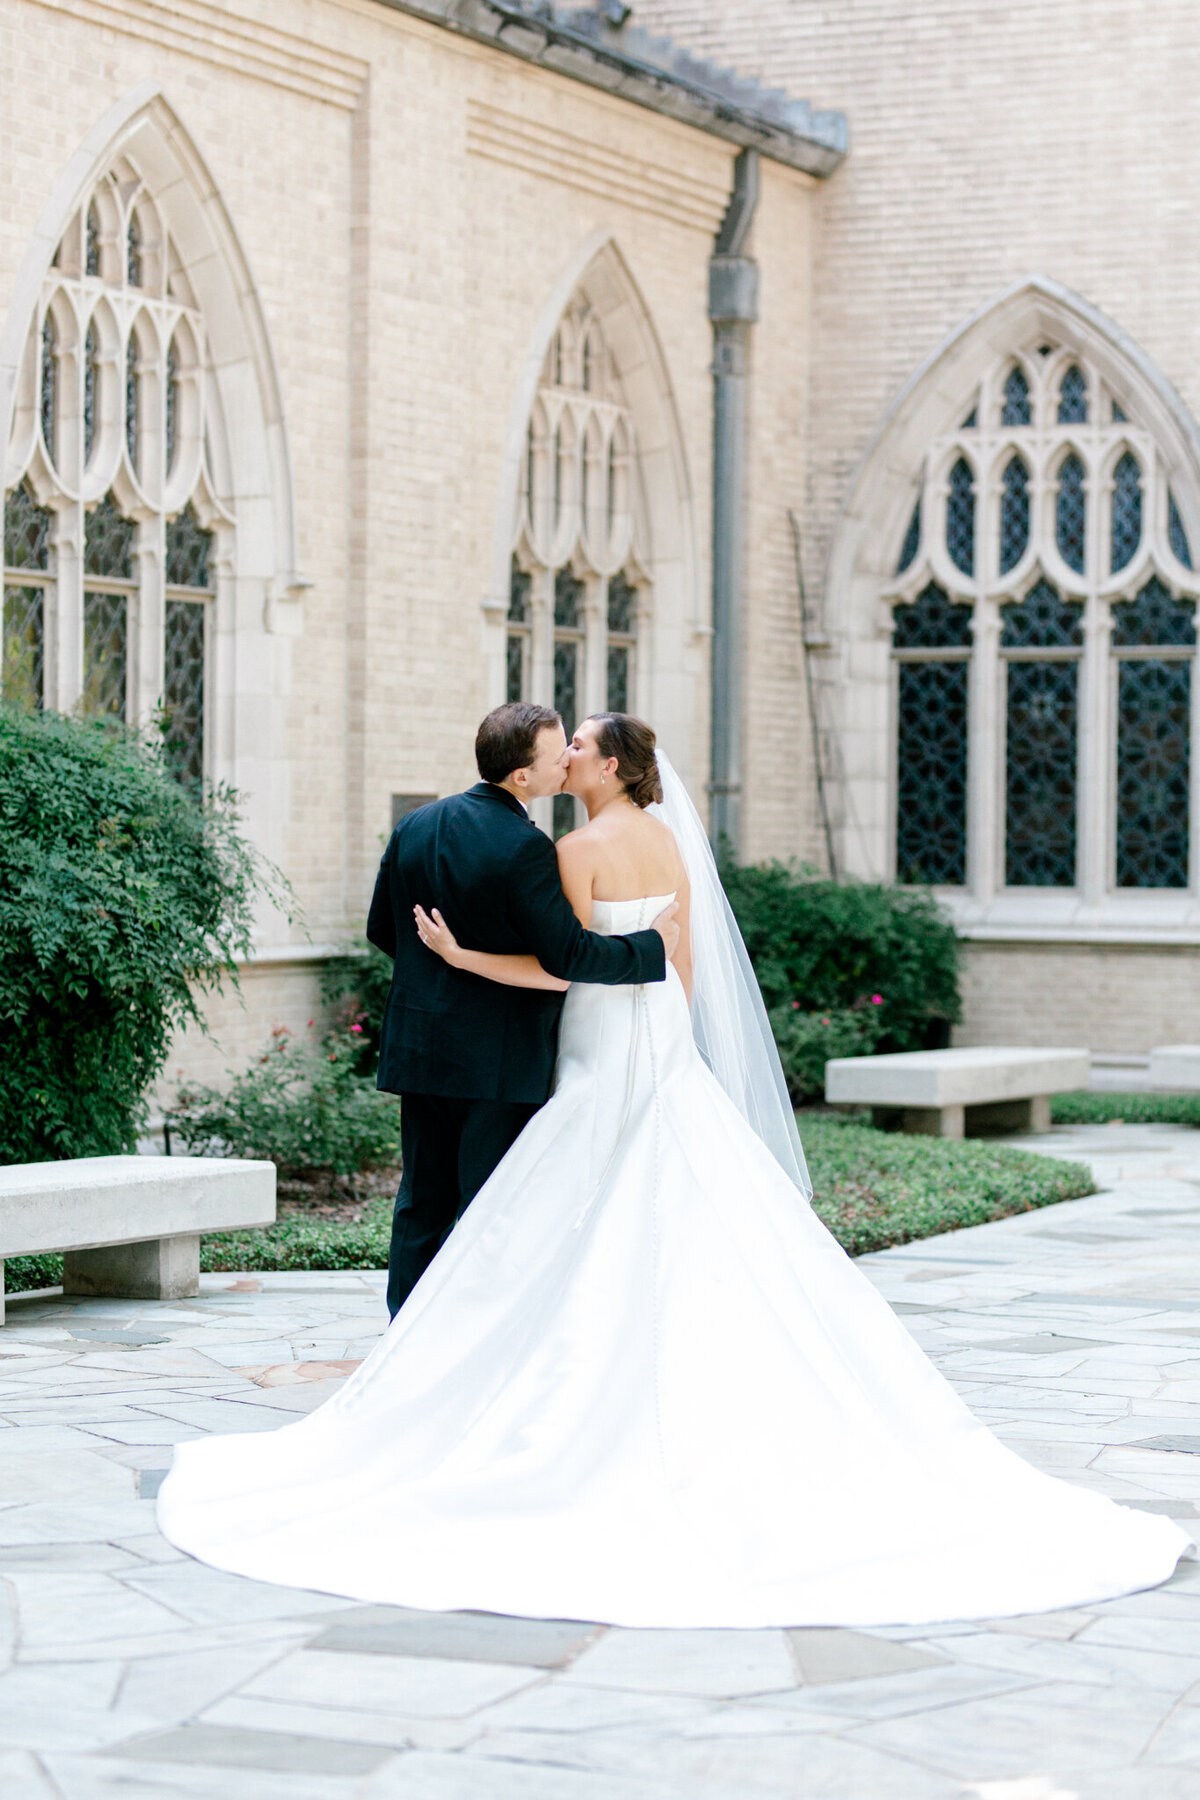 Wedding at the Crescent Court Hotel and Highland Park United Methodist Church in Dallas | Sami Kathryn Photography | DFW Wedding Photographer-133